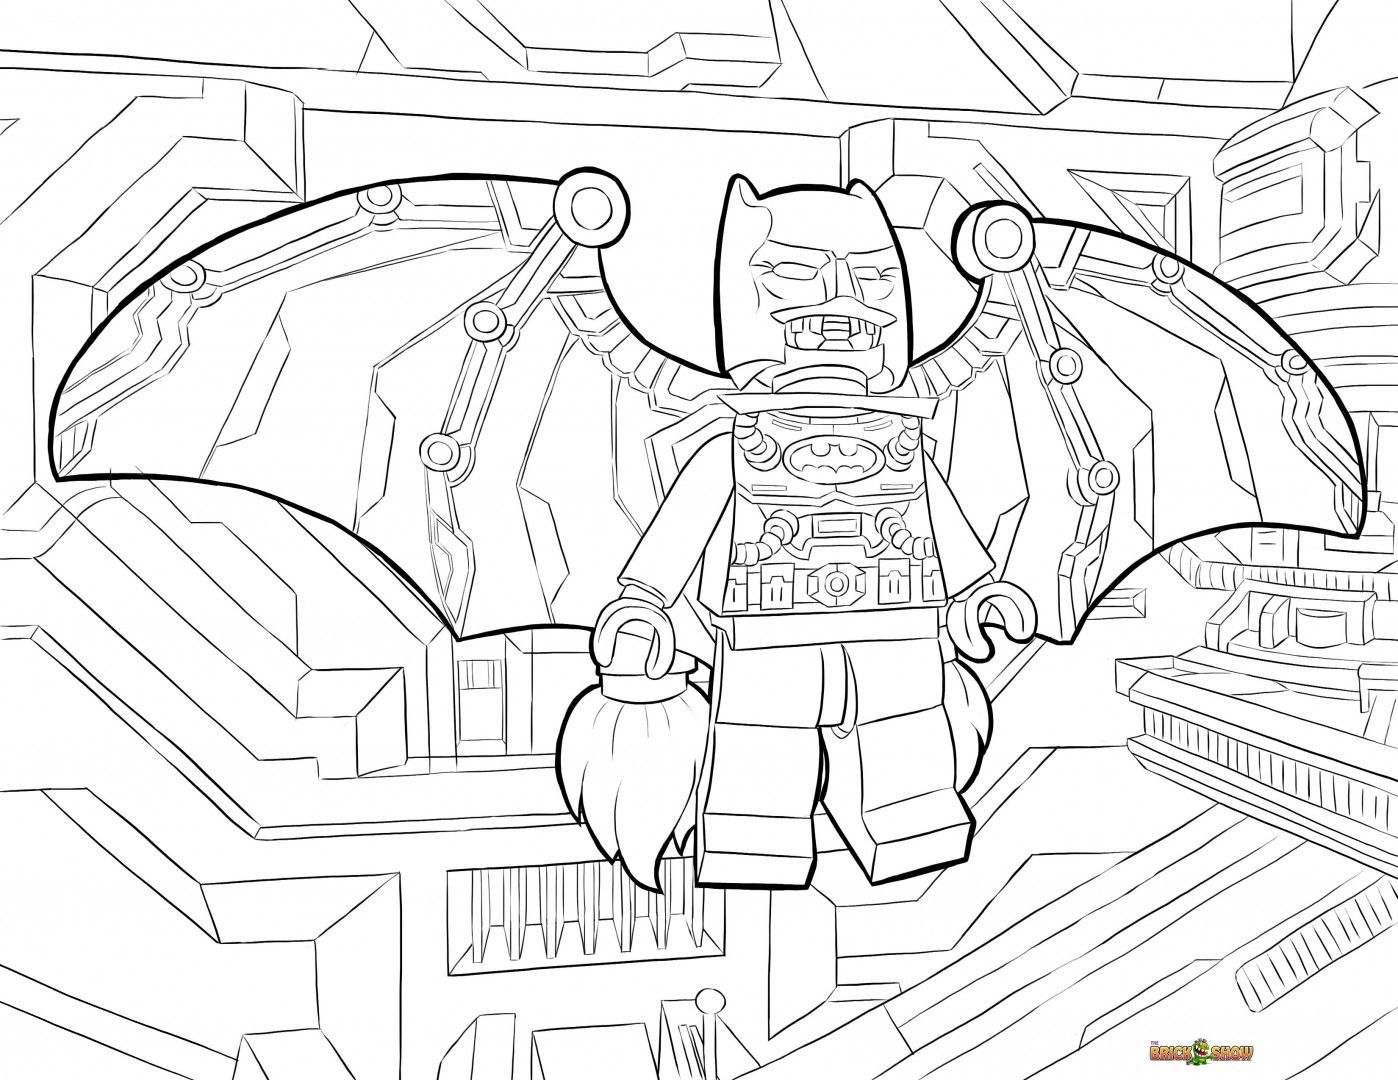 http://colorings.co/batman-lego-coloring-pages-for-boys/ | Colorings ...